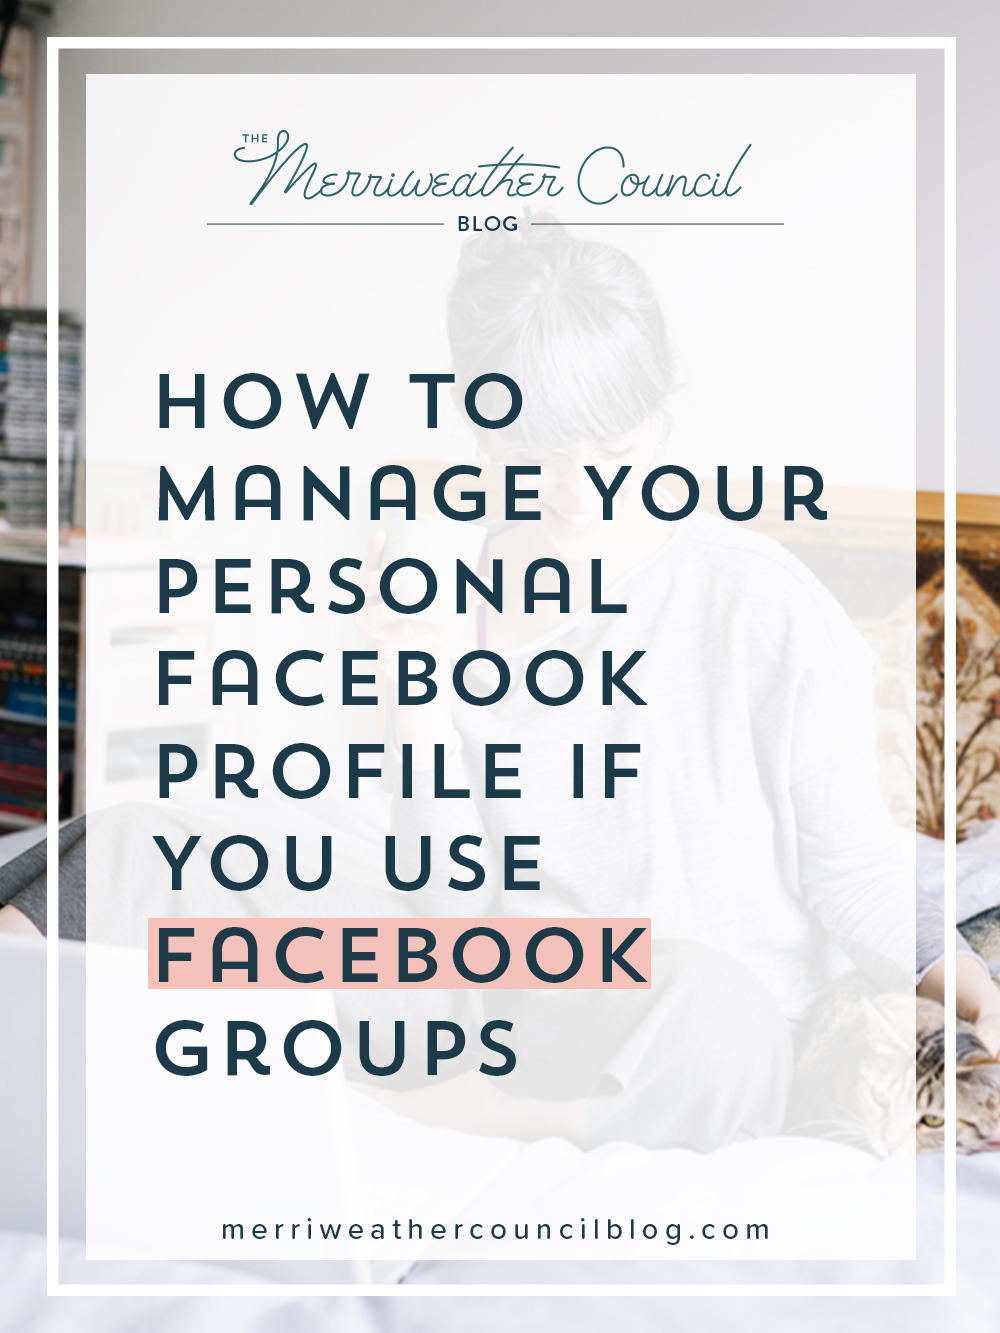 How to Manage Your Personal Facebook Profile if You Use Facebook Groups | the merriweather council blog